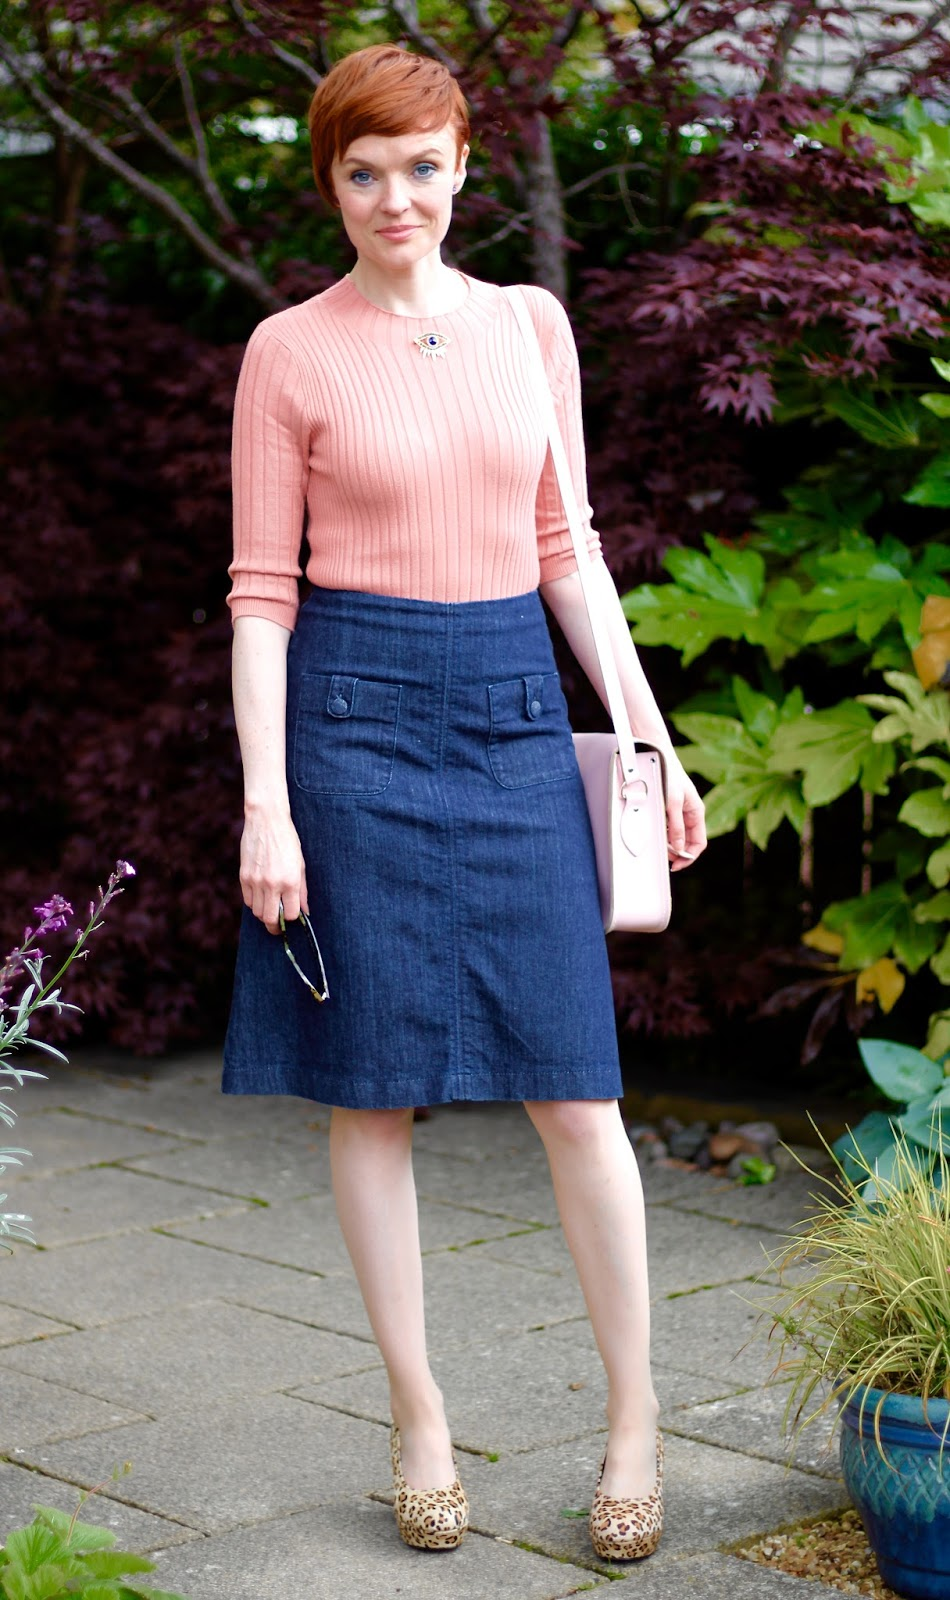 Fake Fabulous | Is it time for your style to grow up? | Denim A-line skirt, leopard platform shoes and an eye brooch.